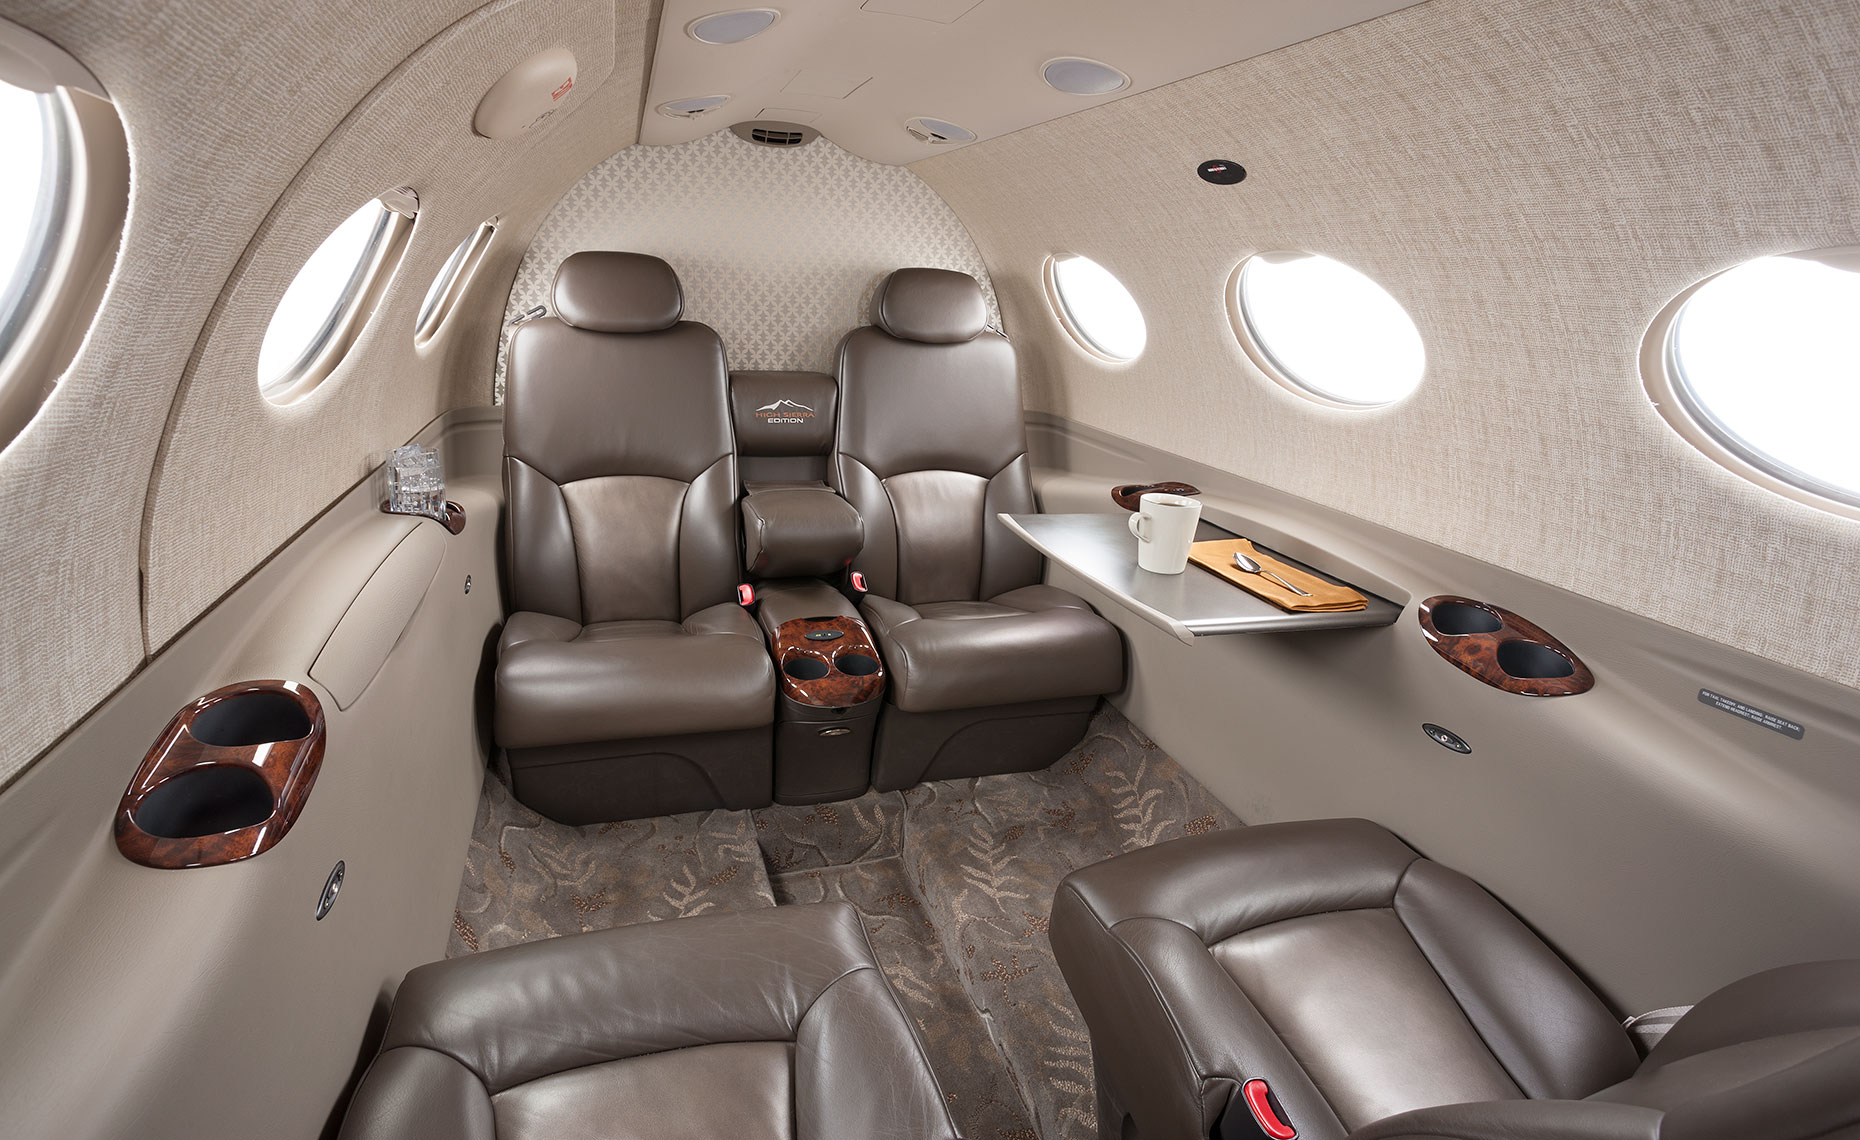 Cessna Mustang Private Jet Cabin Interior